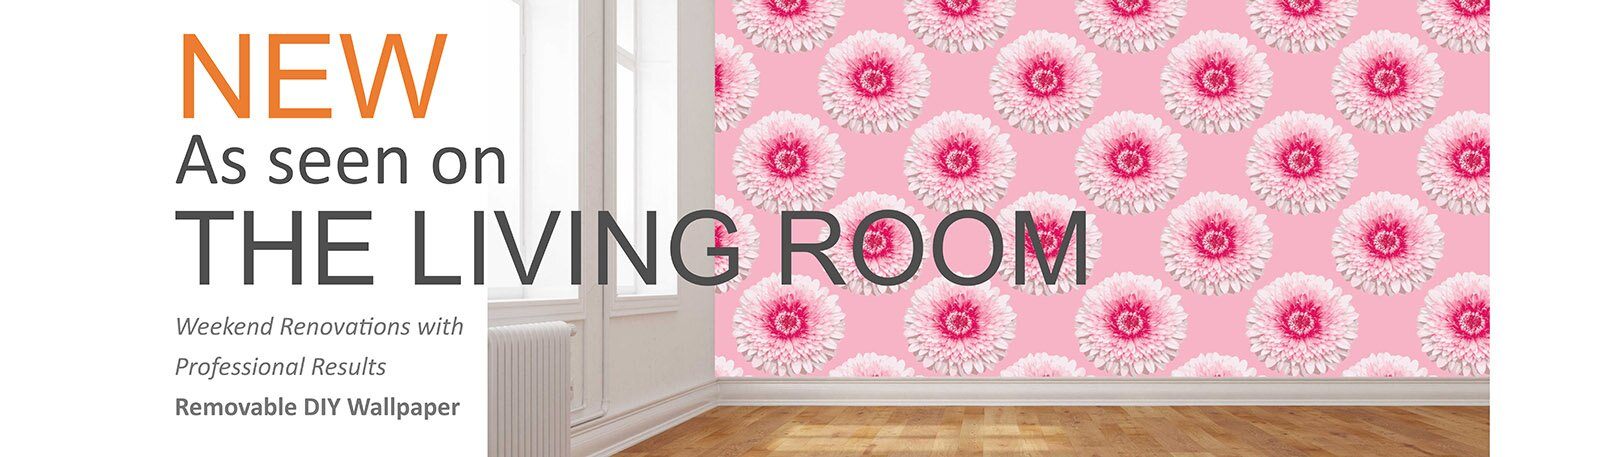 The-Living-Room-Banner-Small